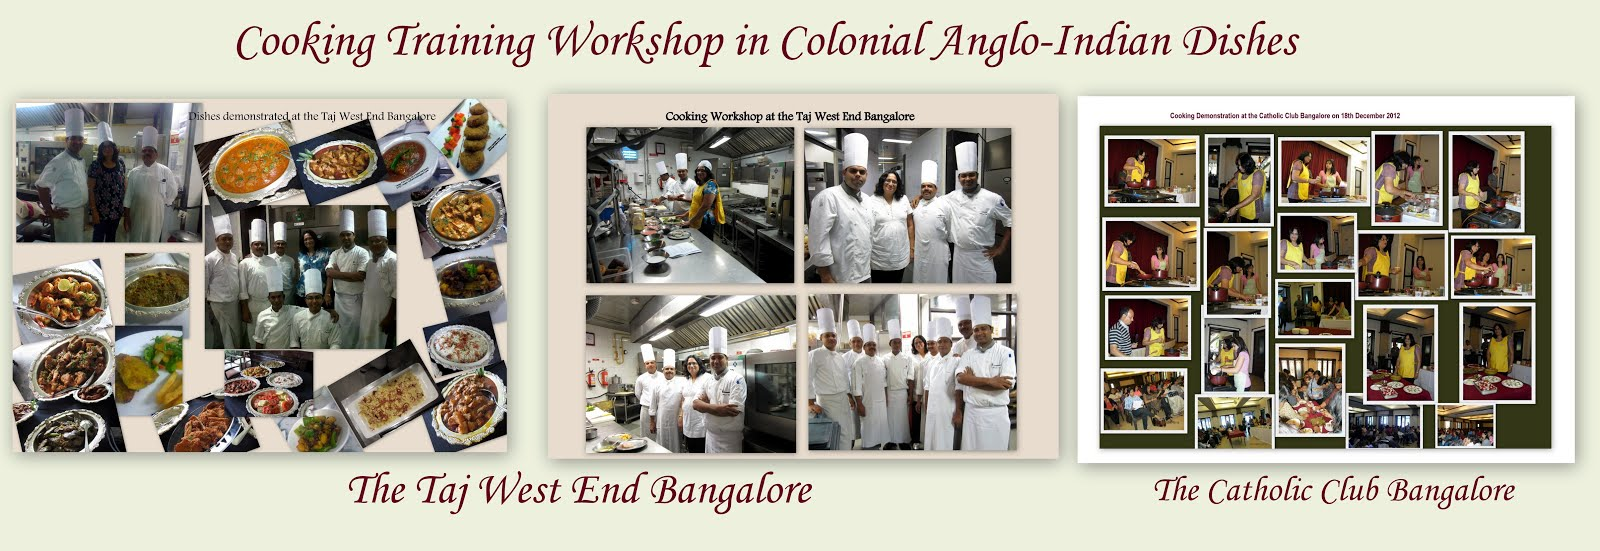 Cooking Training Workshop in Anglo-Indian Cuisine